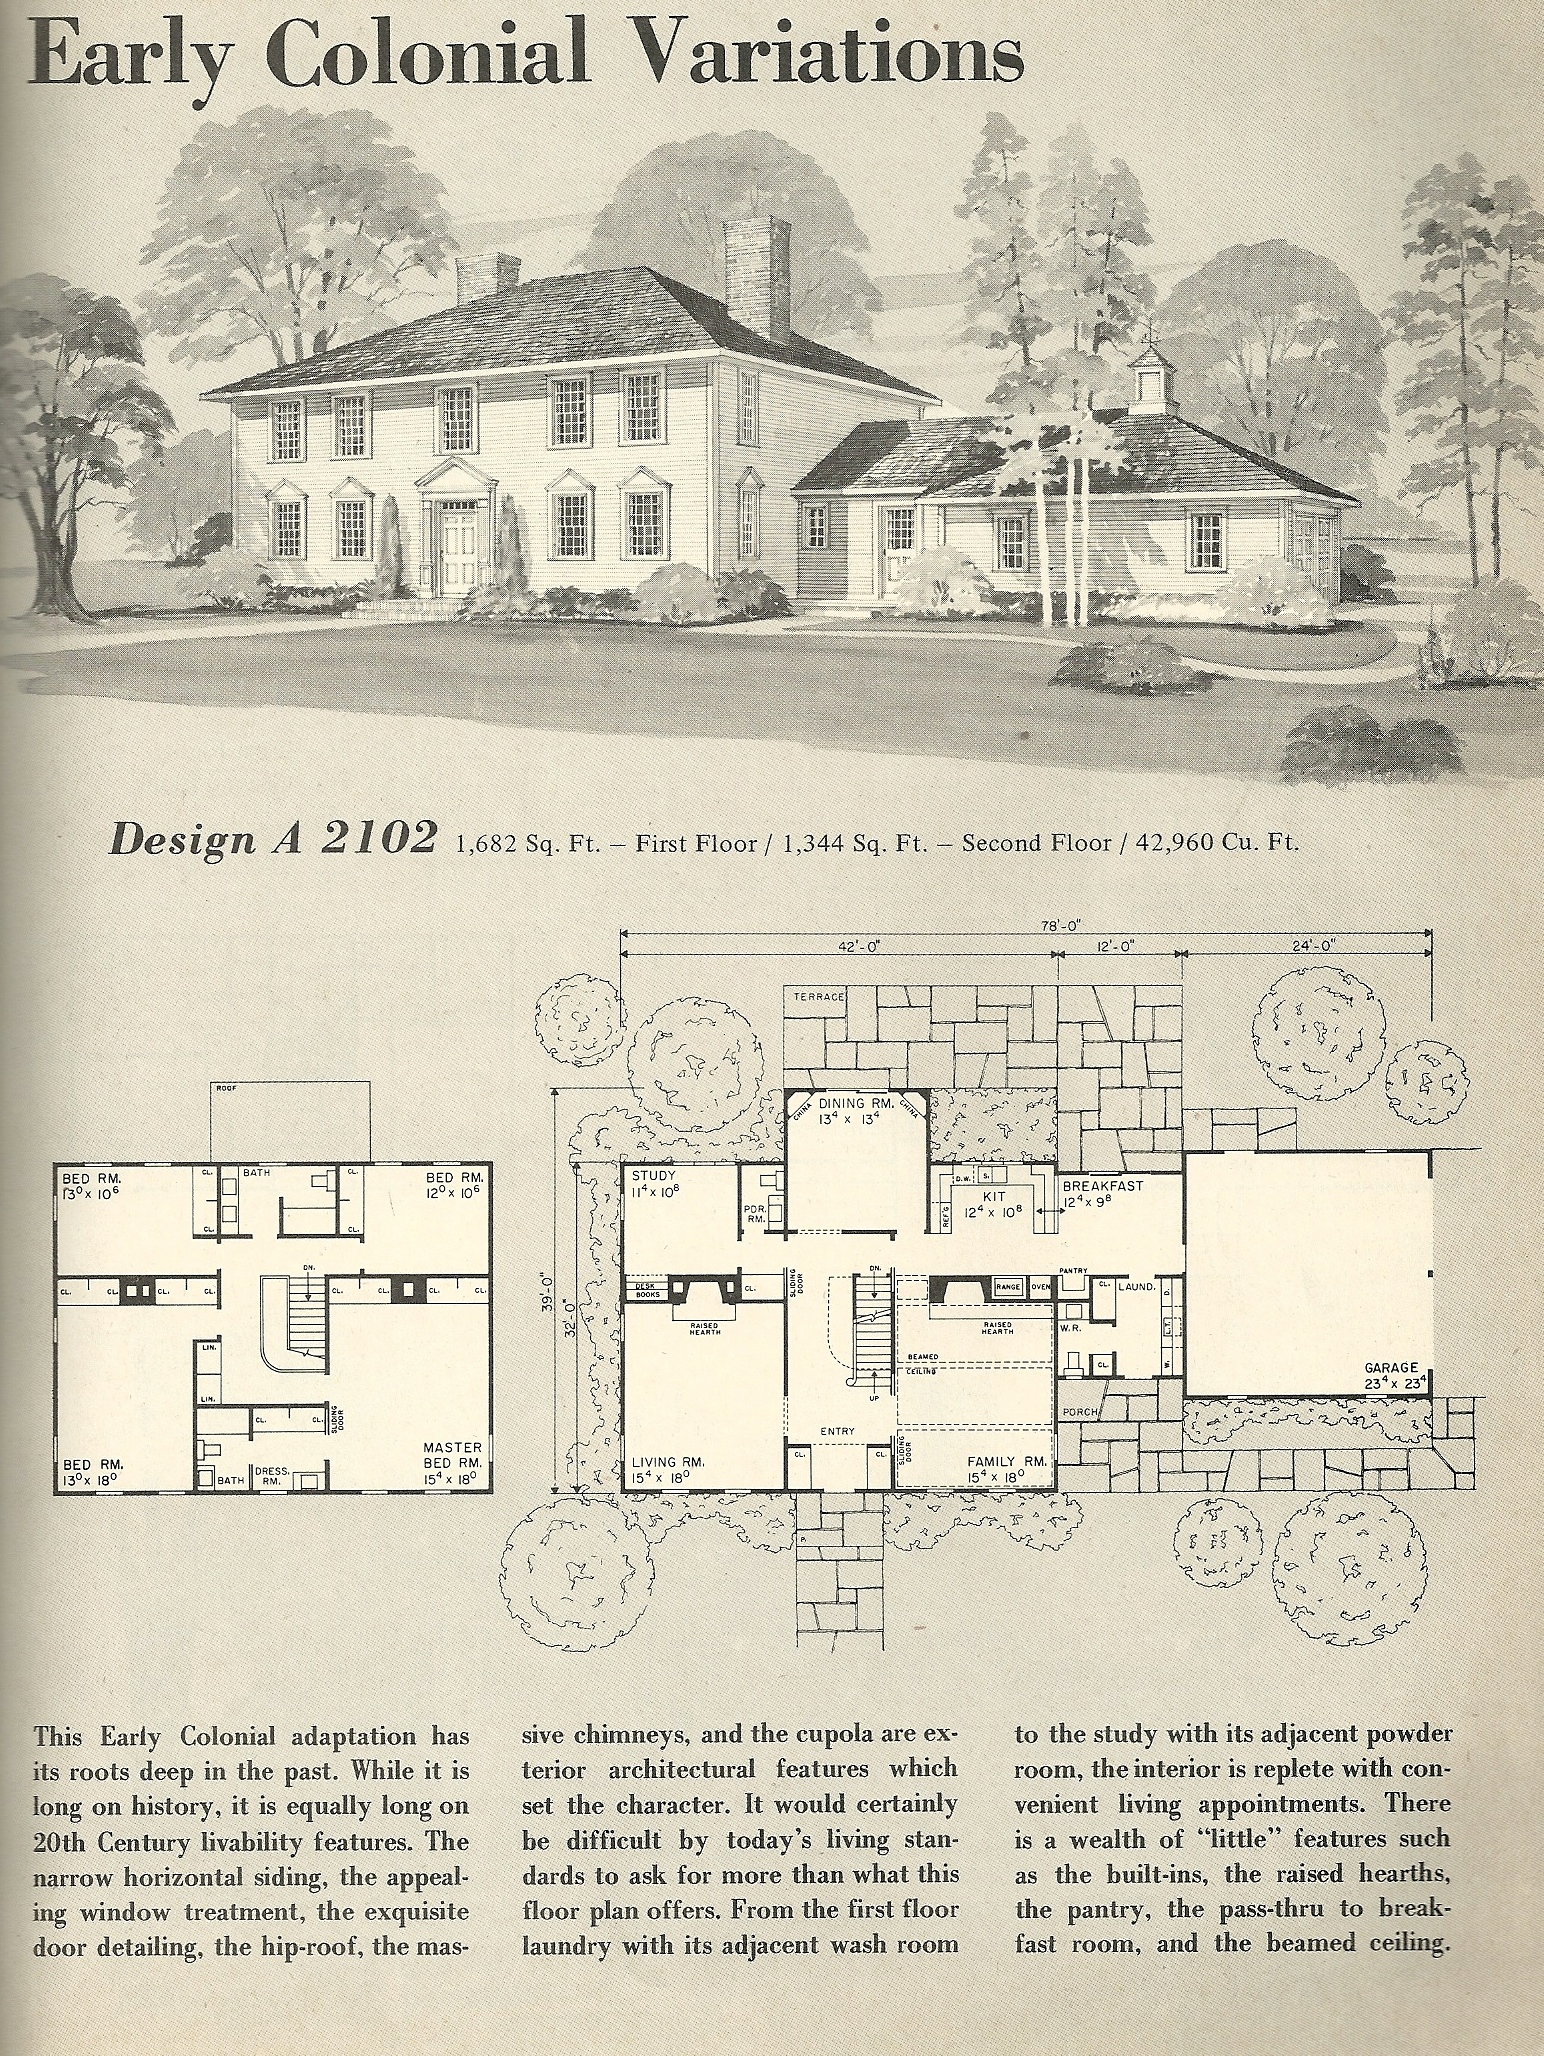 Vintage house plans 2102 antique alter ego for Antique farmhouse plans